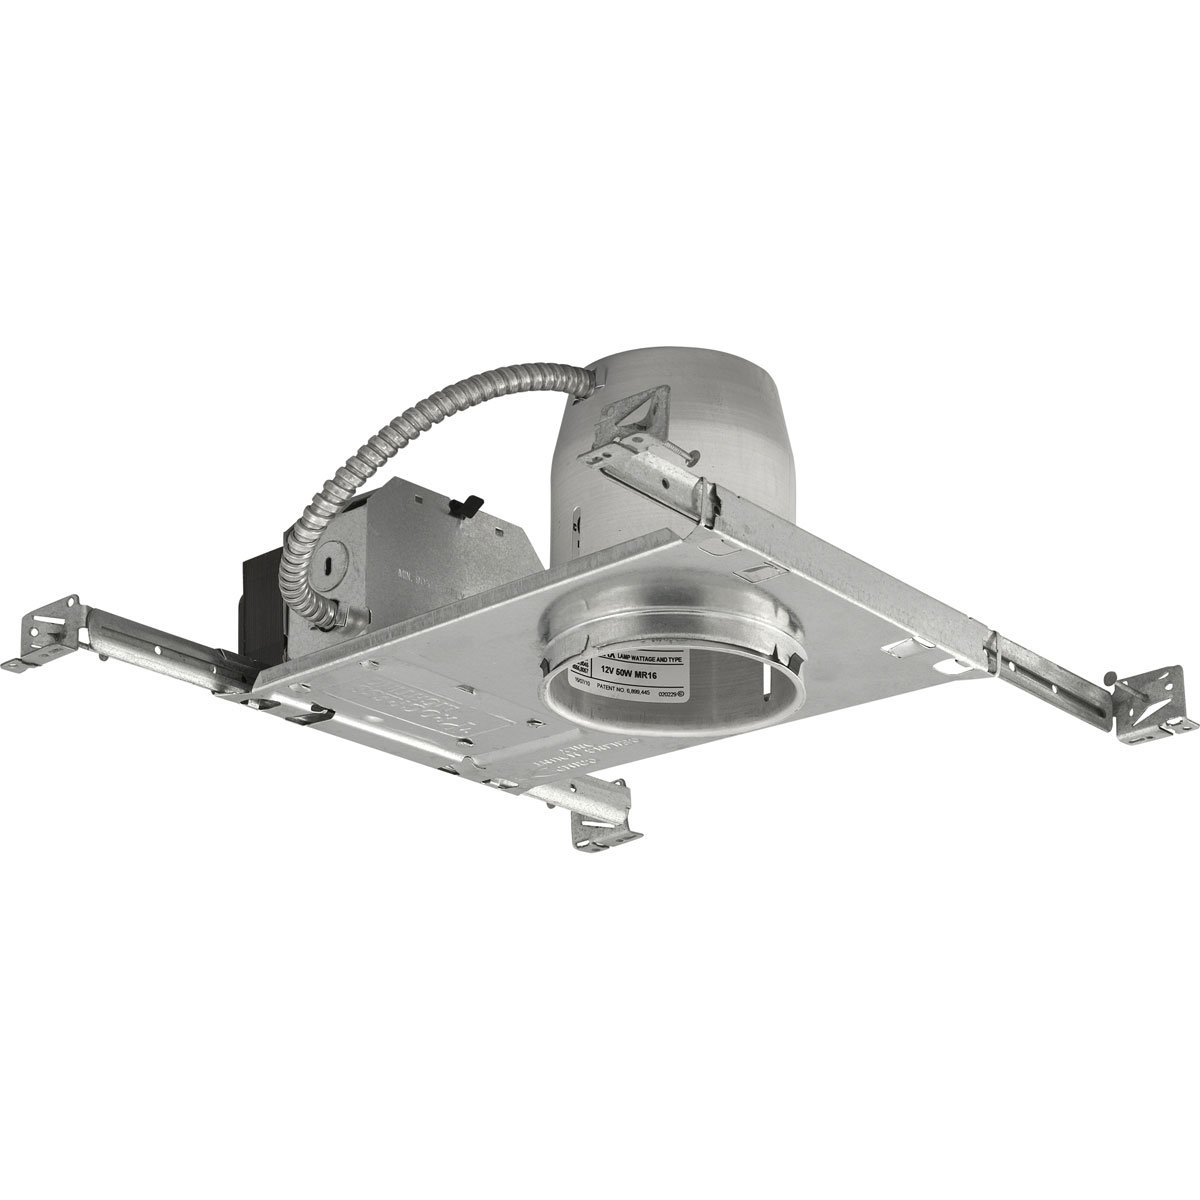 Progress Lighting P816-TG New Construction or Remodel Work Outlet Box